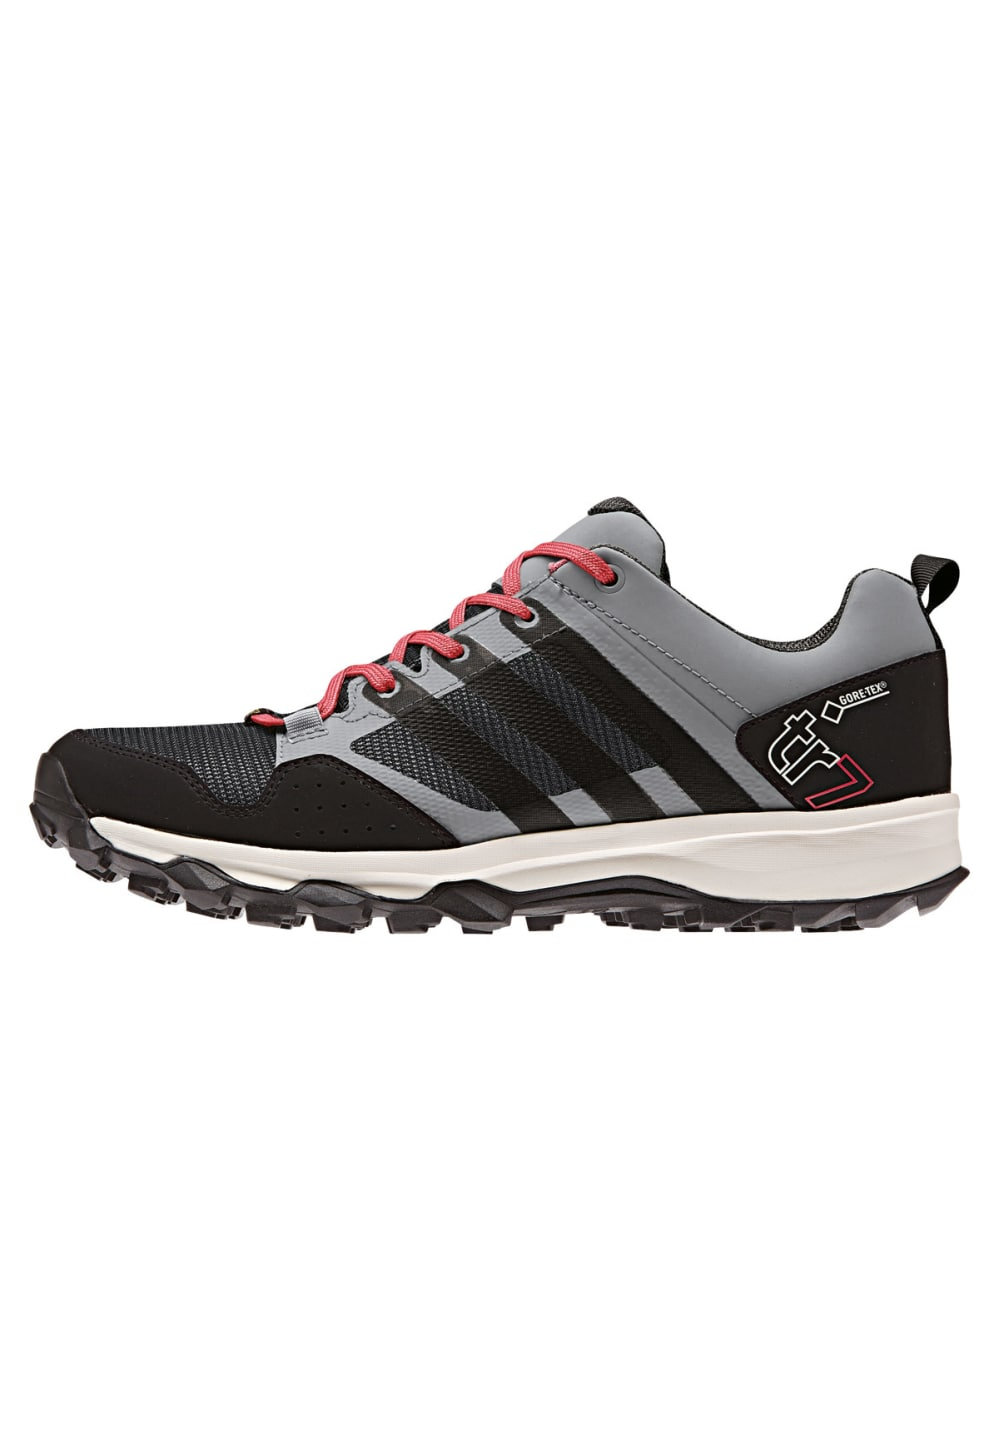 new concept 20a81 925d5 ... adidas Kanadia 7 TR GTX - Running shoes for Women - Grey. Back to  Overview. 1 2. Previous